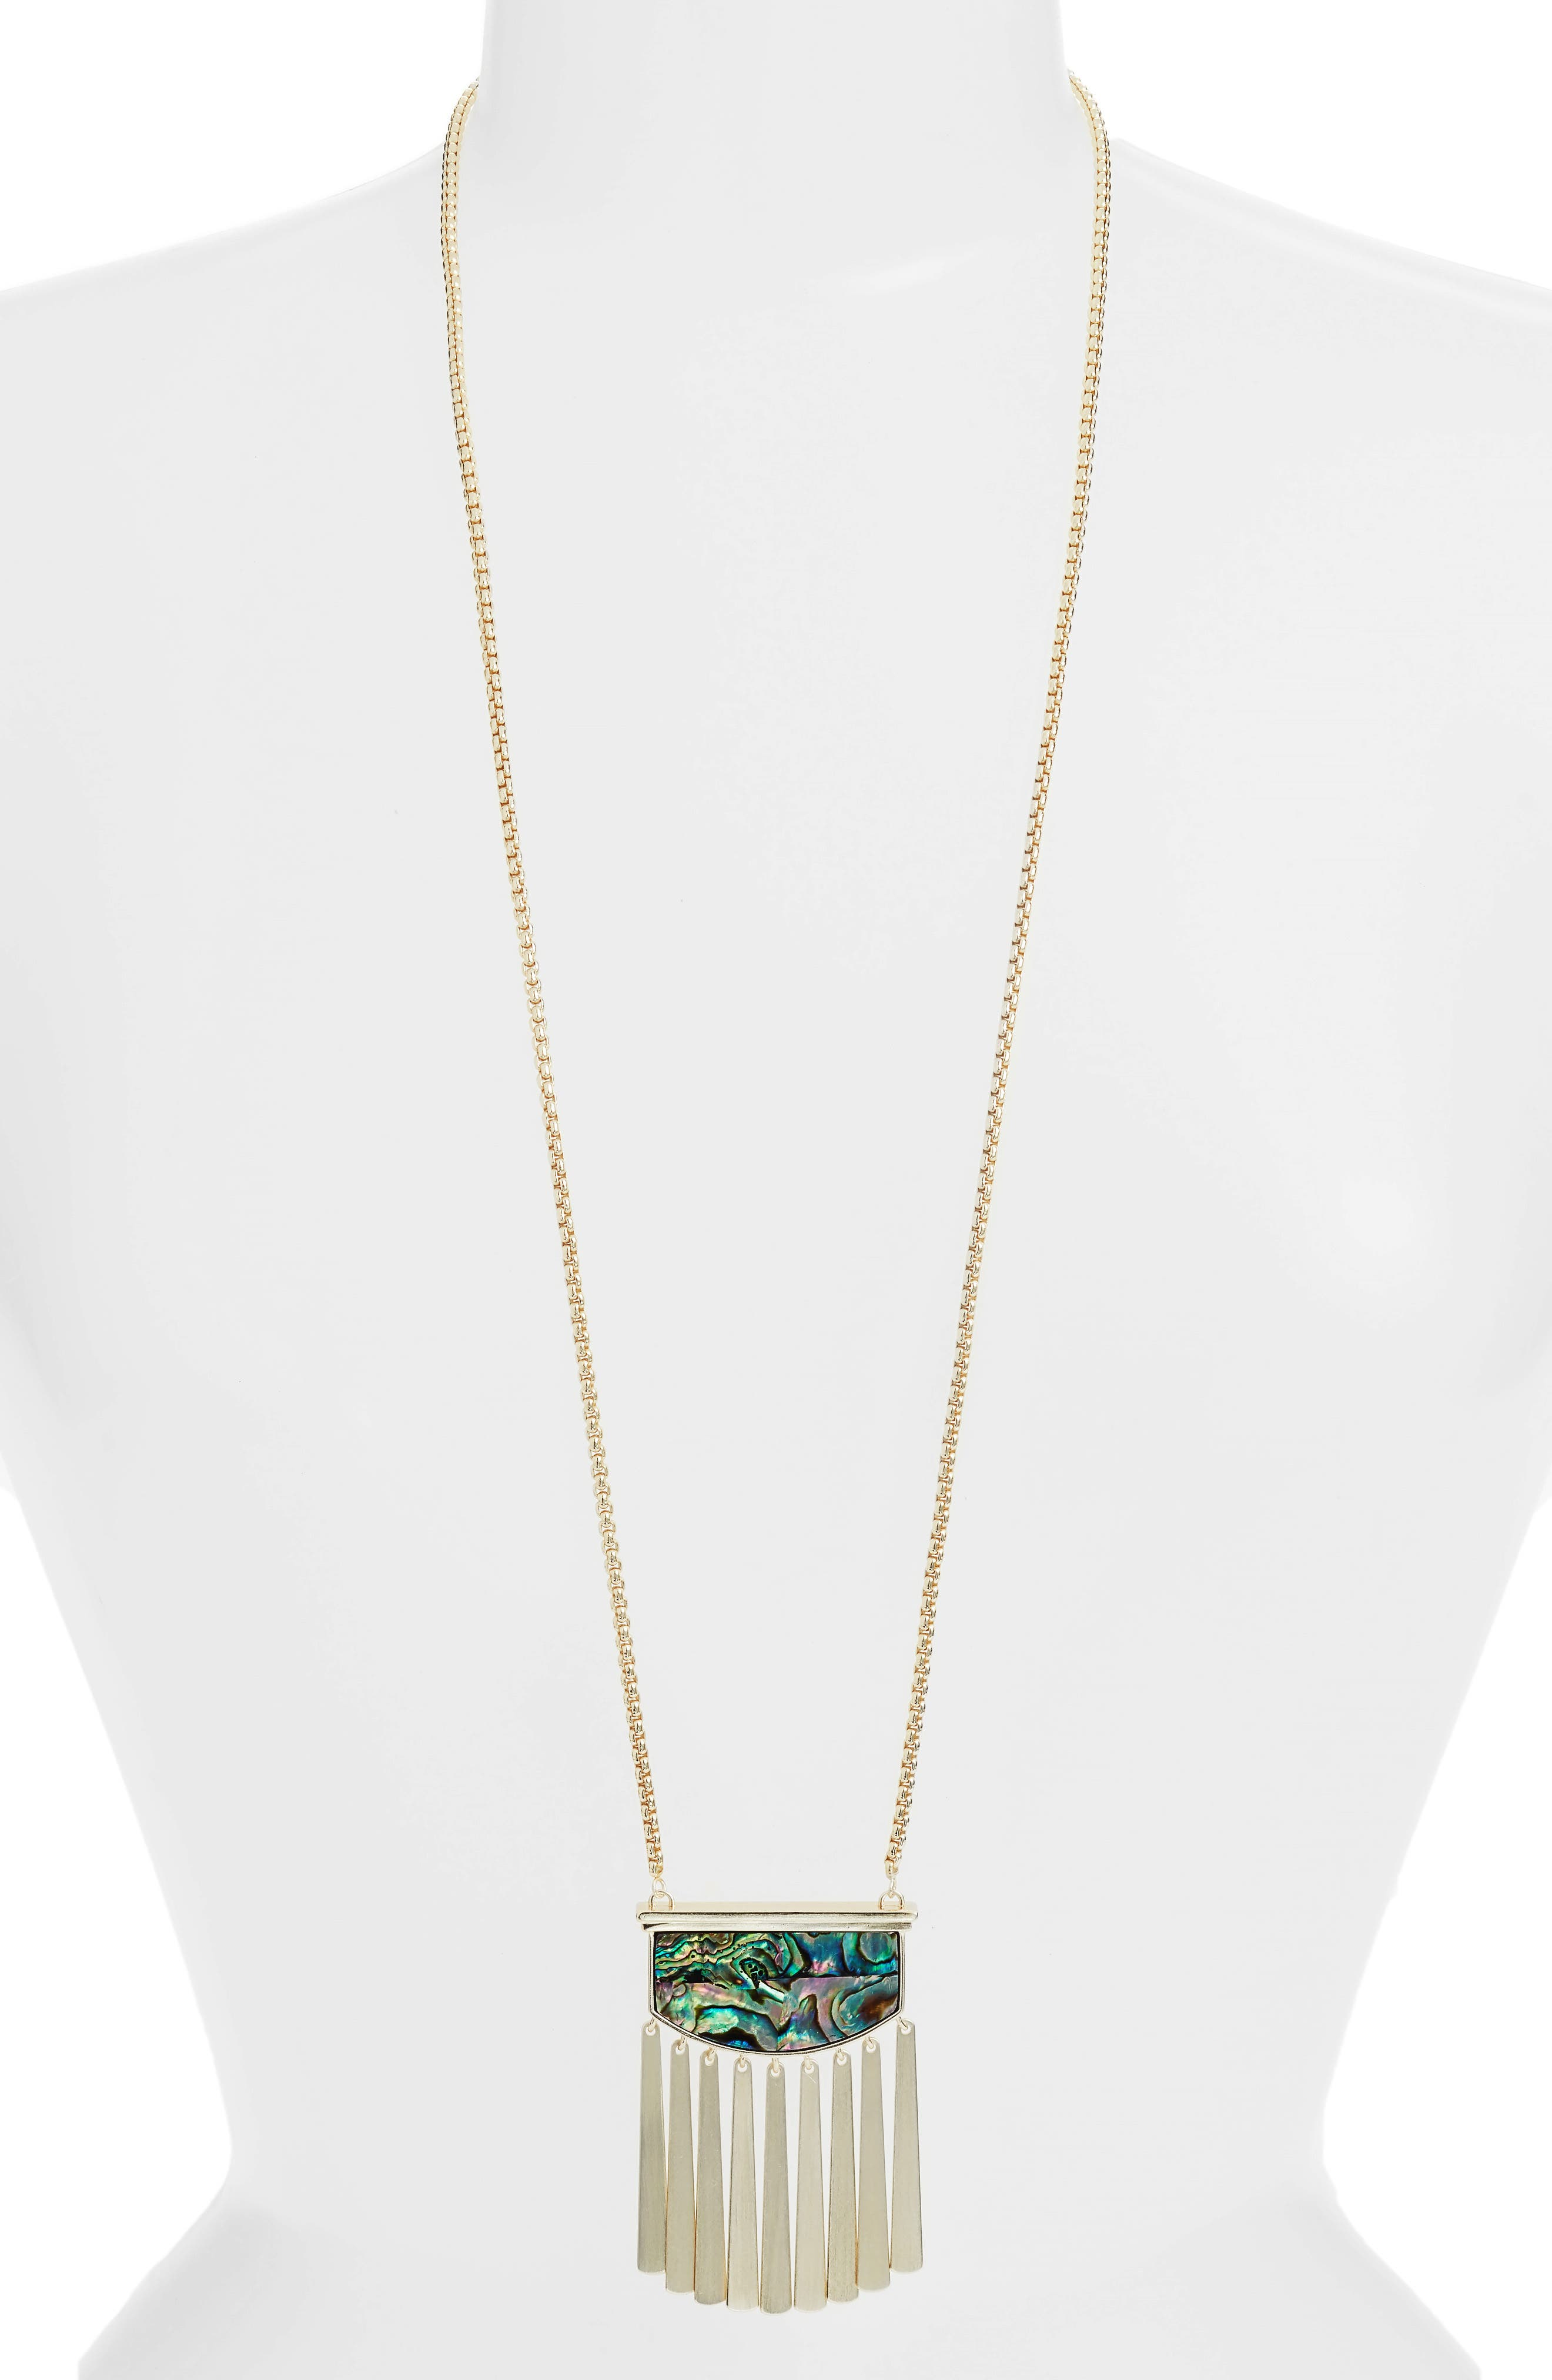 Ellen Stone Necklace,                         Main,                         color, Abalone Shell/ Gold